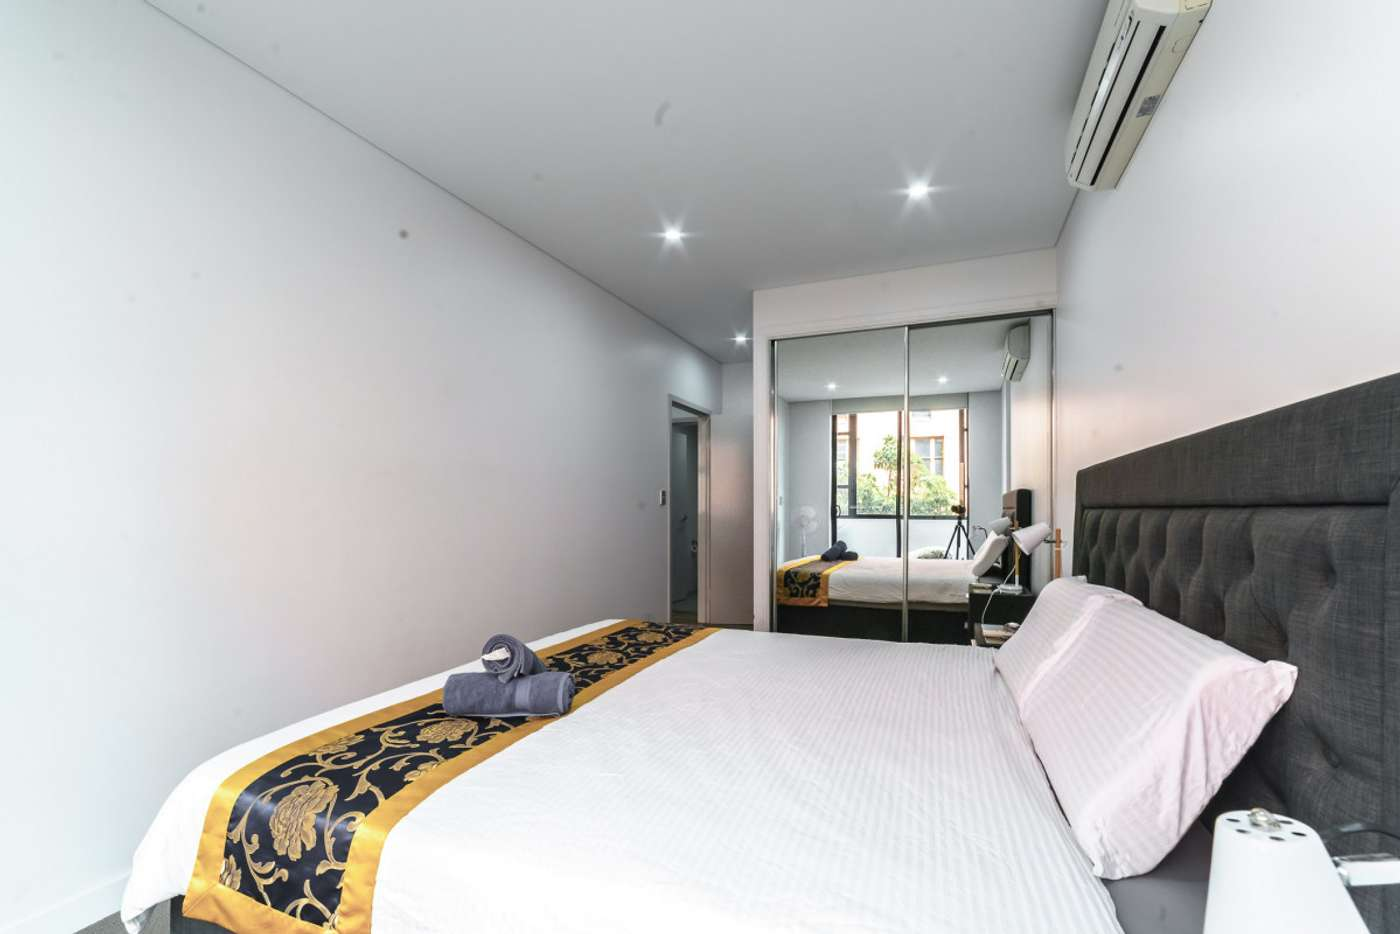 Seventh view of Homely apartment listing, 252/71 Jones Street, Ultimo NSW 2007